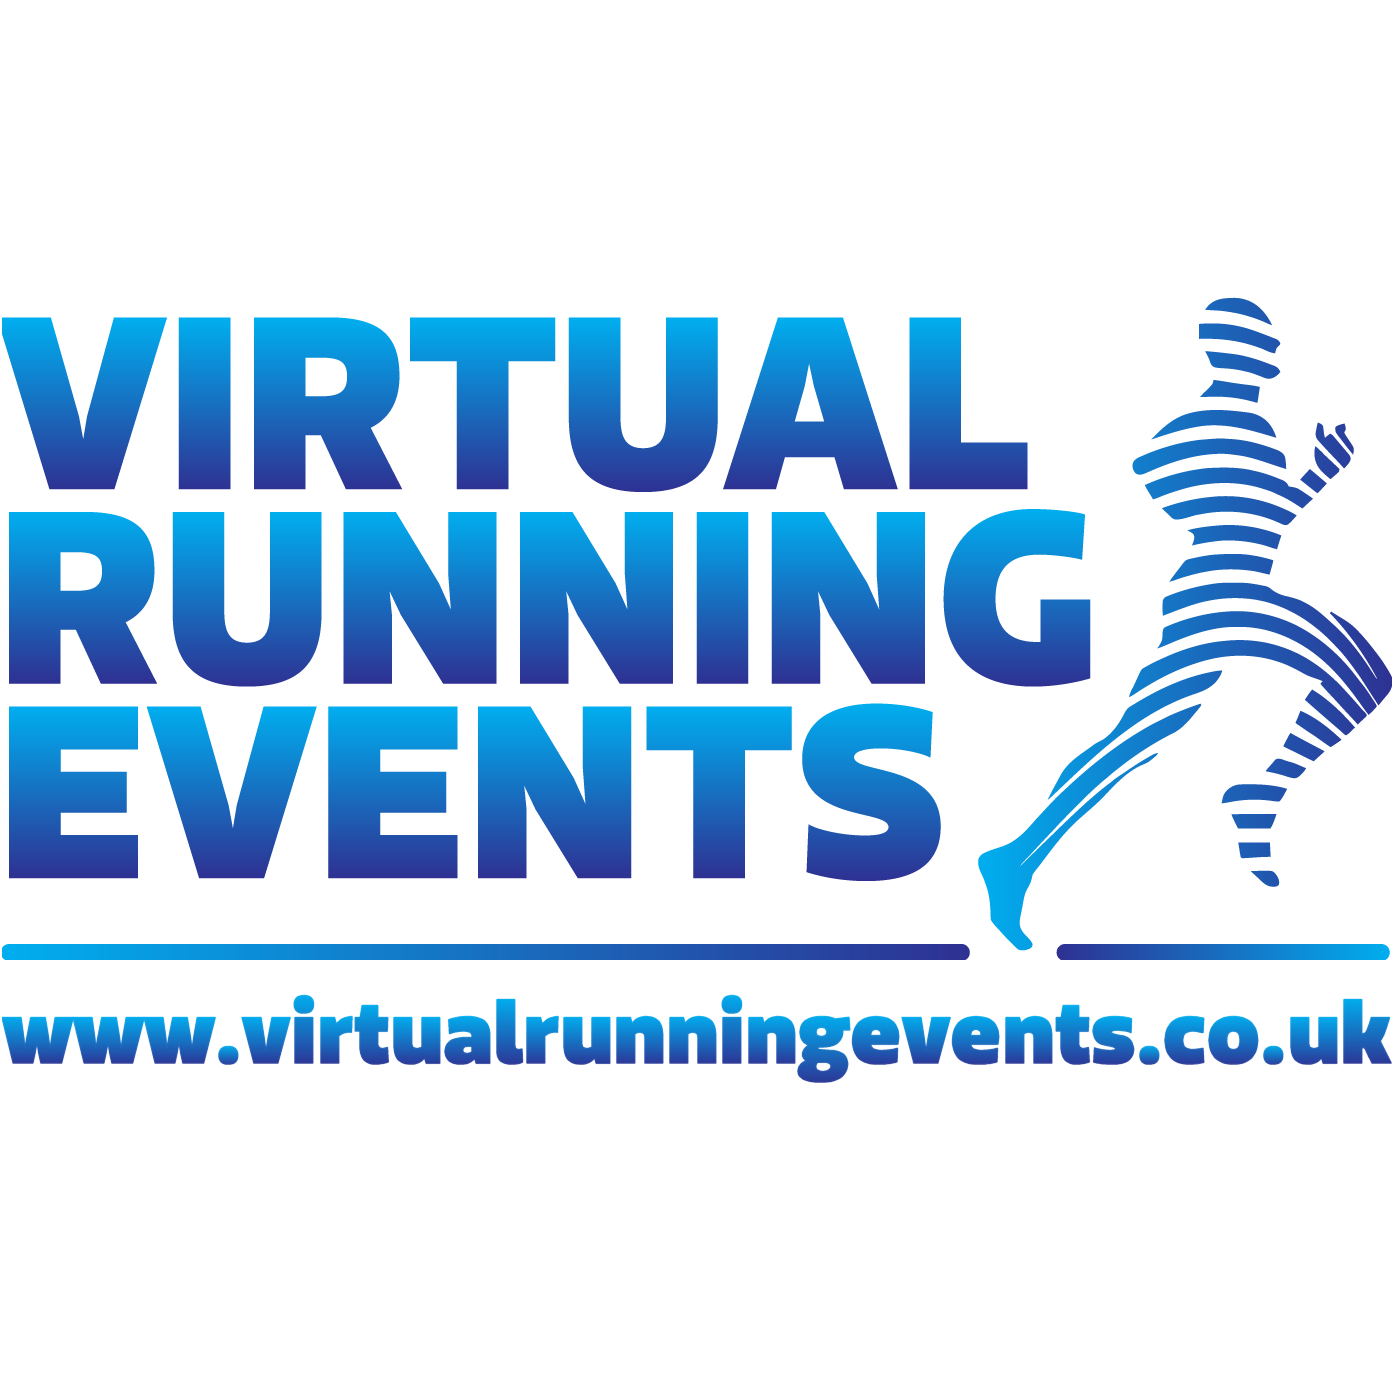 Virtual Running Events